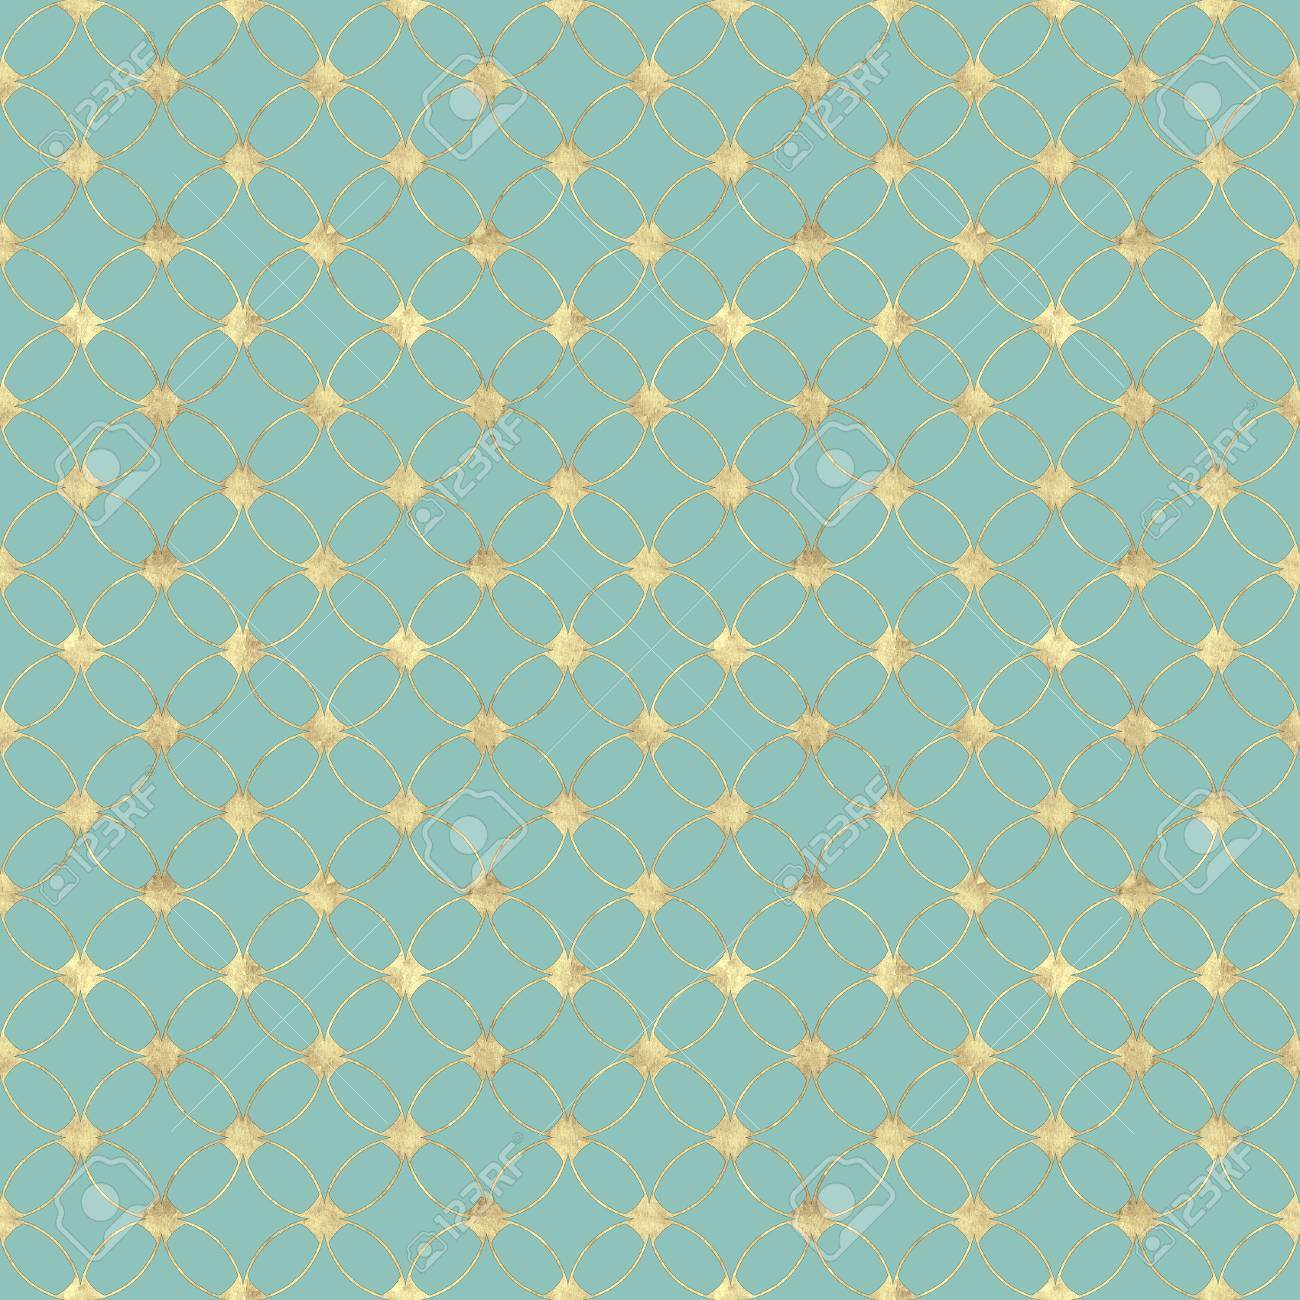 Seamless Pastel Mint Teal Turquoise Background With Abstract Stock Photo Picture And Royalty Free Image Image 115292763